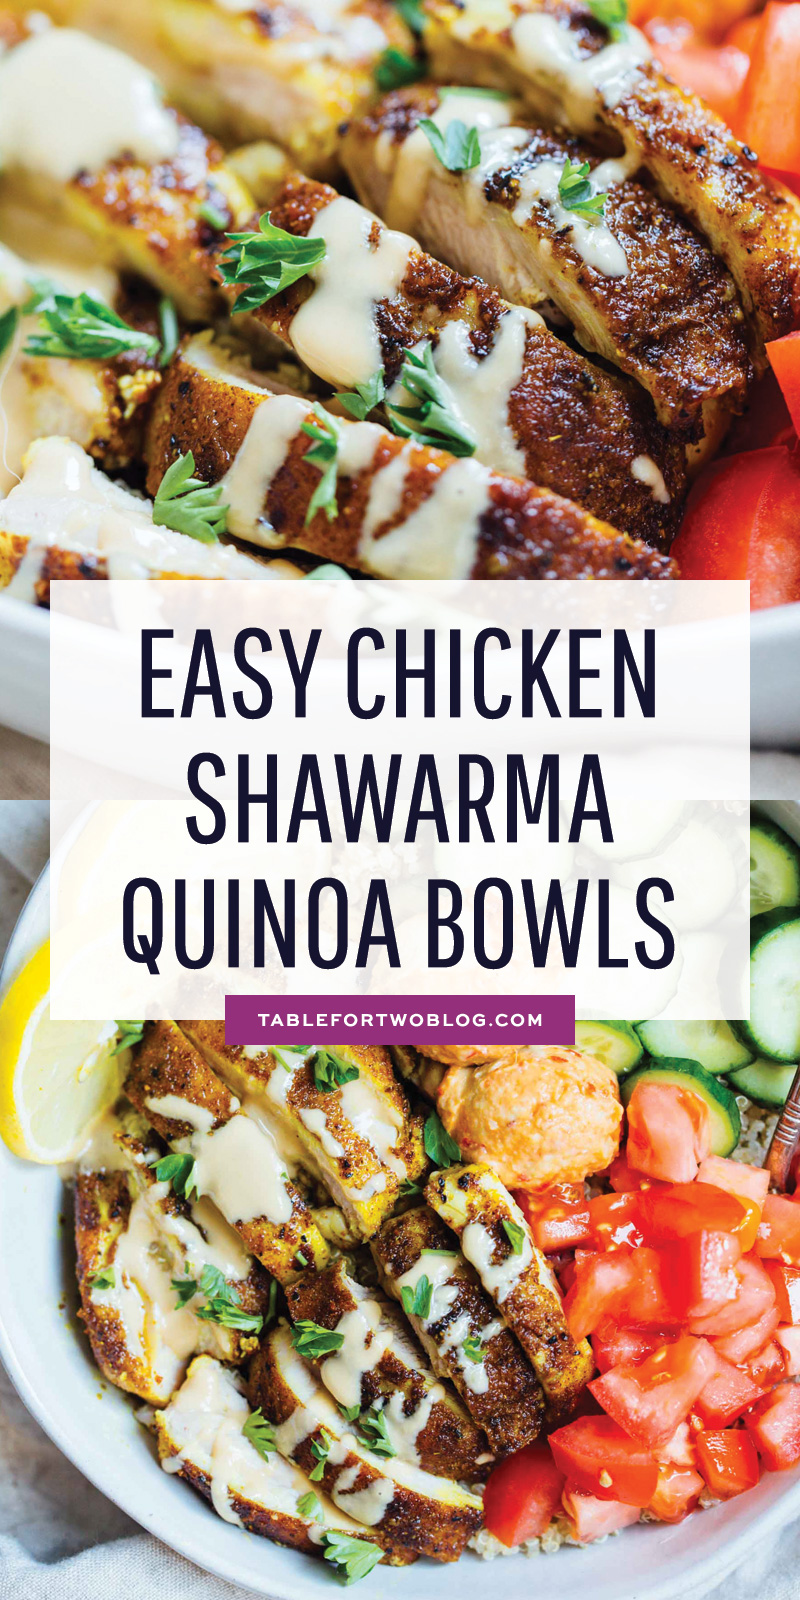 These easy chicken shawarma quinoa bowls are a meal prepping lover's dream. They're so customizable and easy to put together and have for the week! #ad #svorganic #svo #farmerfocus #chickenrecipe #chickenshawarma #chickendinner